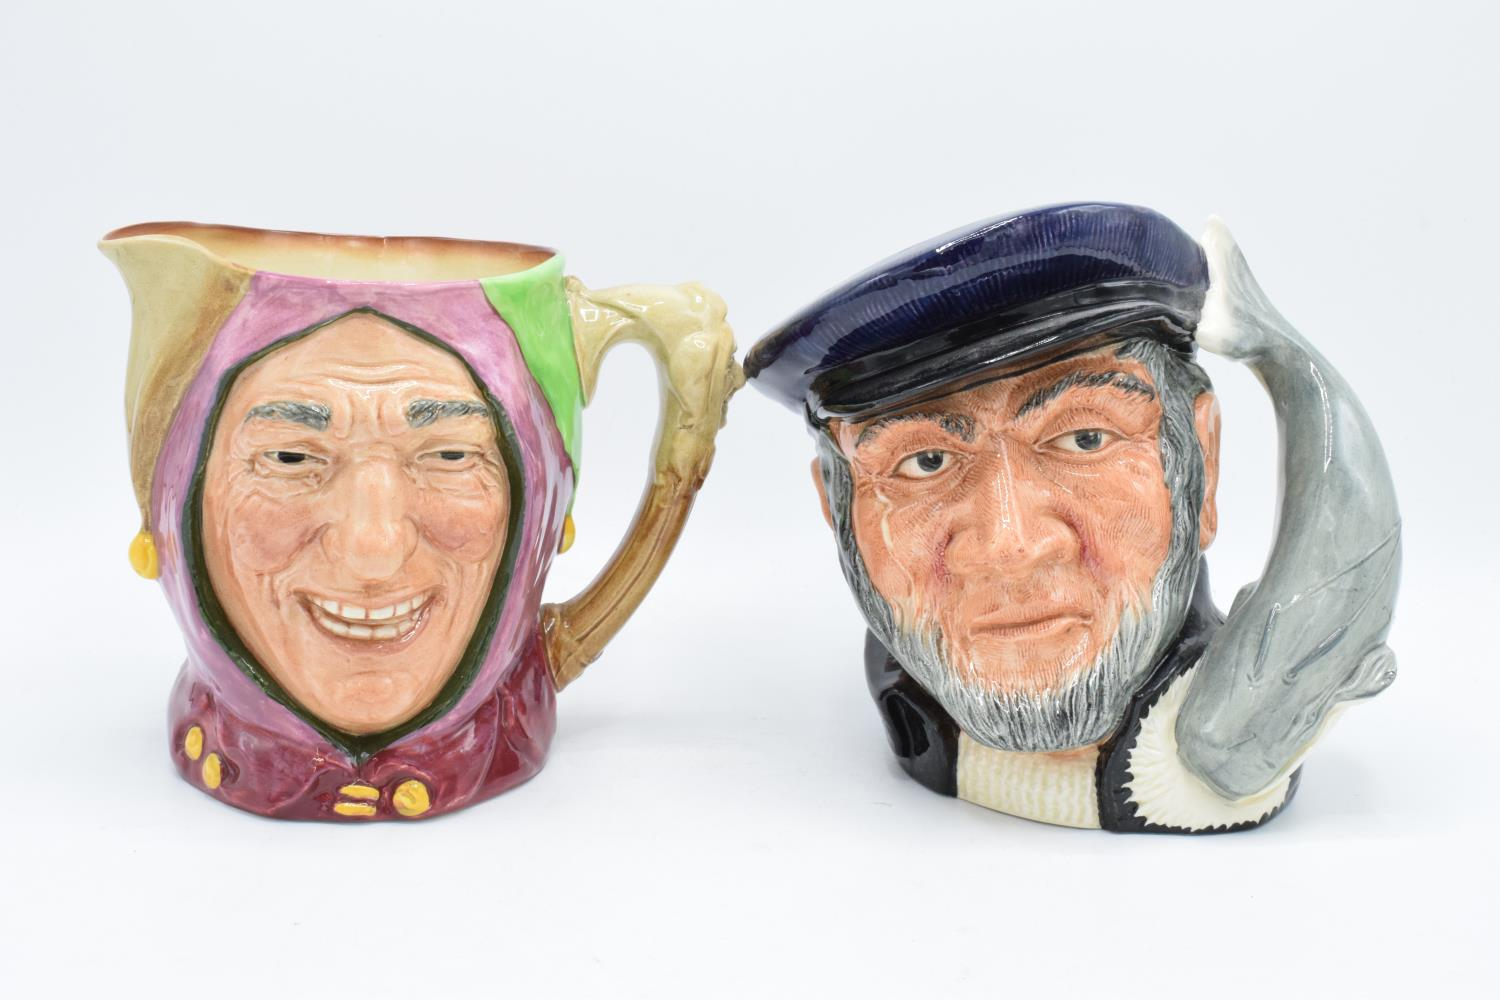 Large Royal Doulton character jugs Touchstone and Capt Ahab D6500 (2). In good condition with no